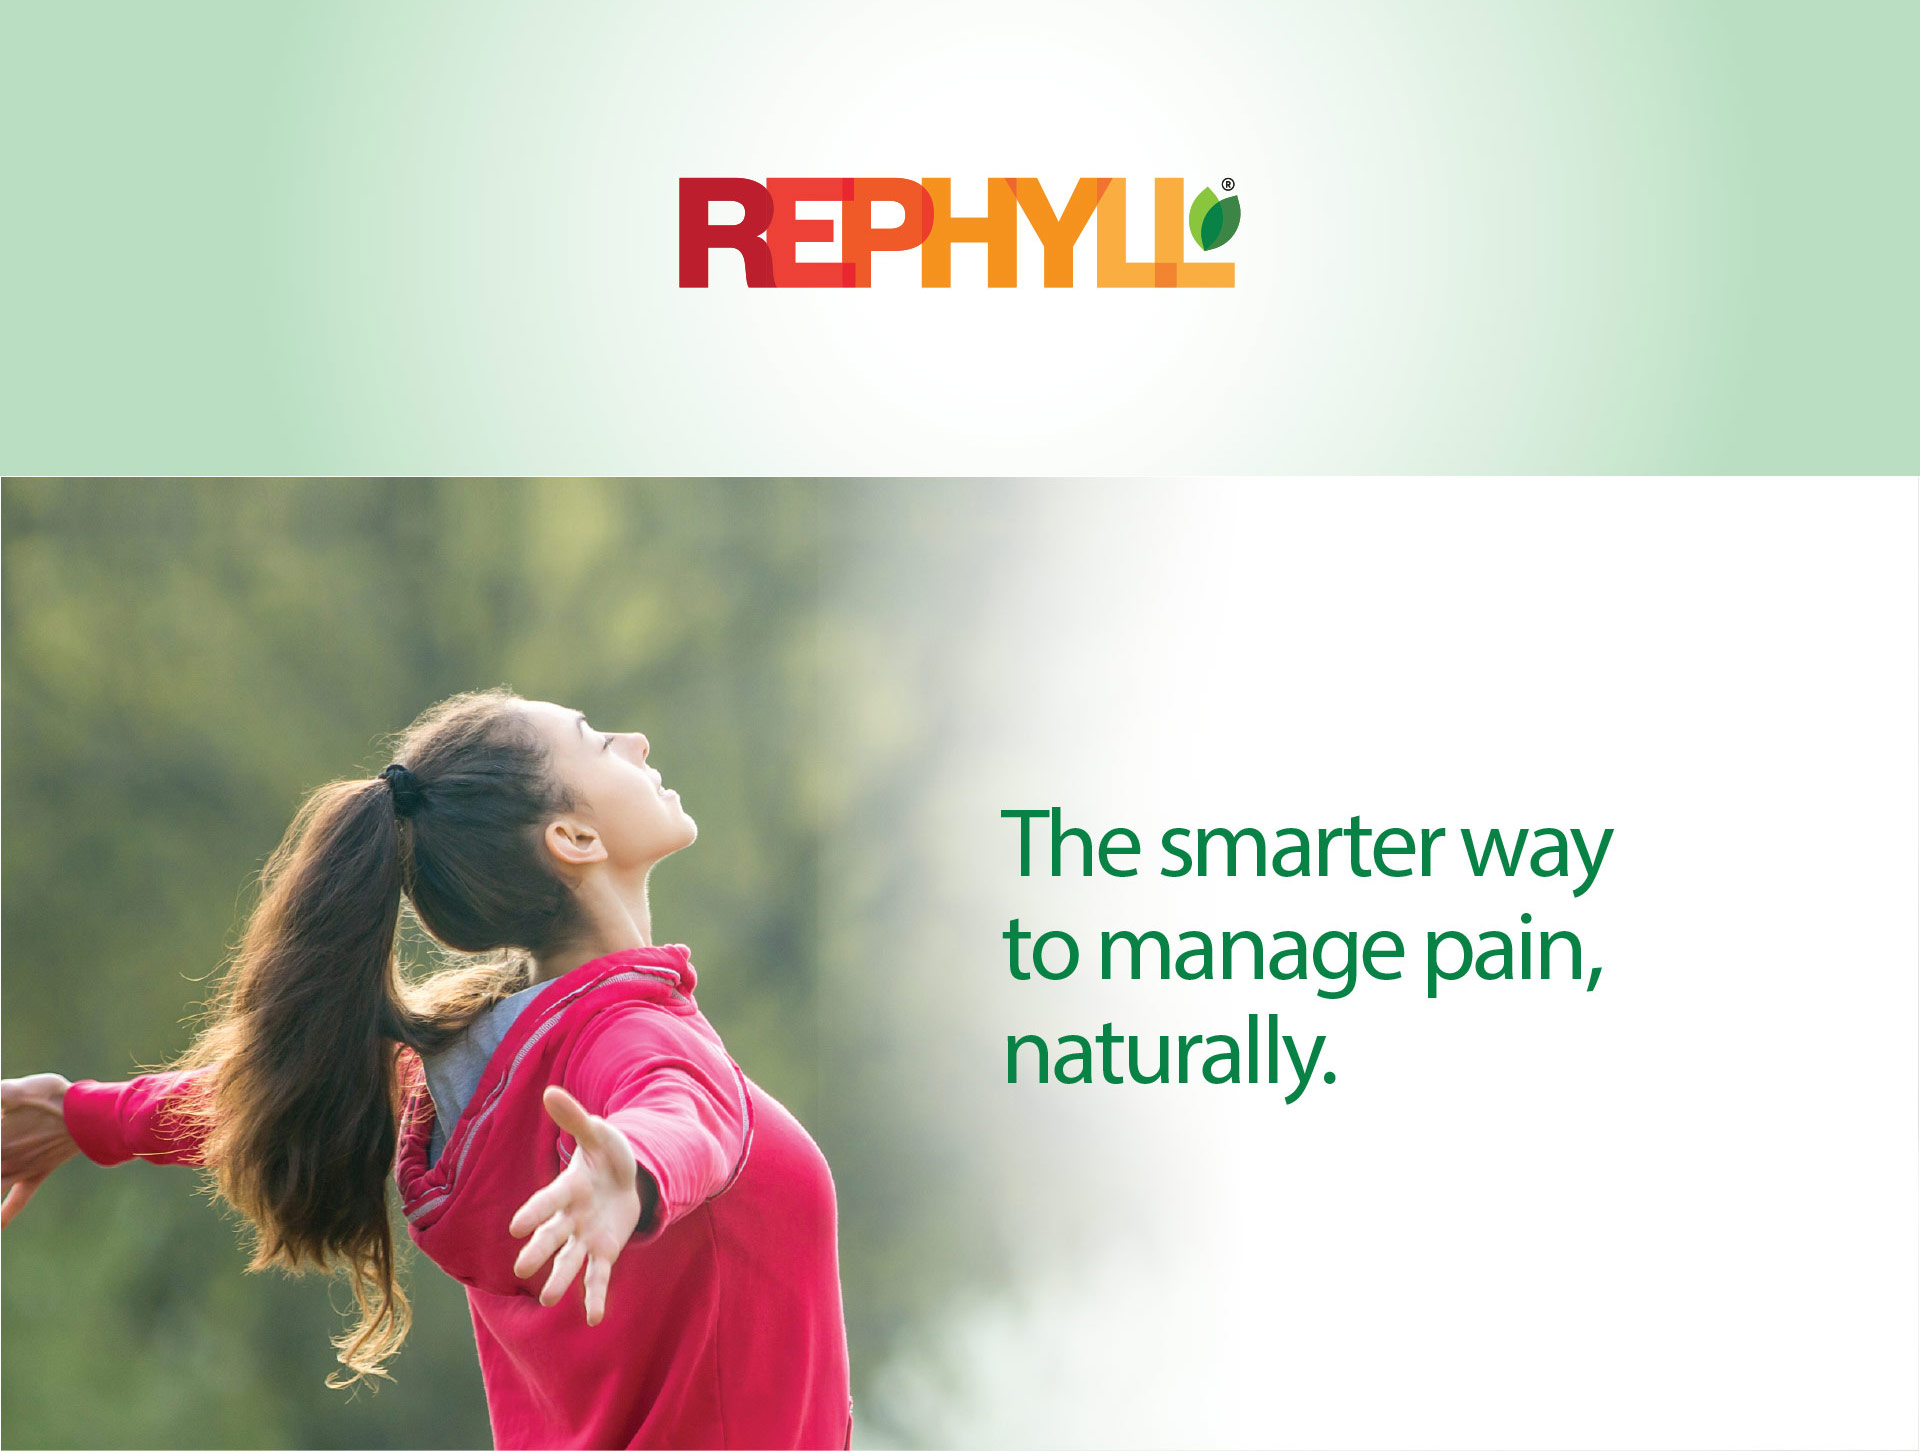 The smarter way to manage pain, naturally.